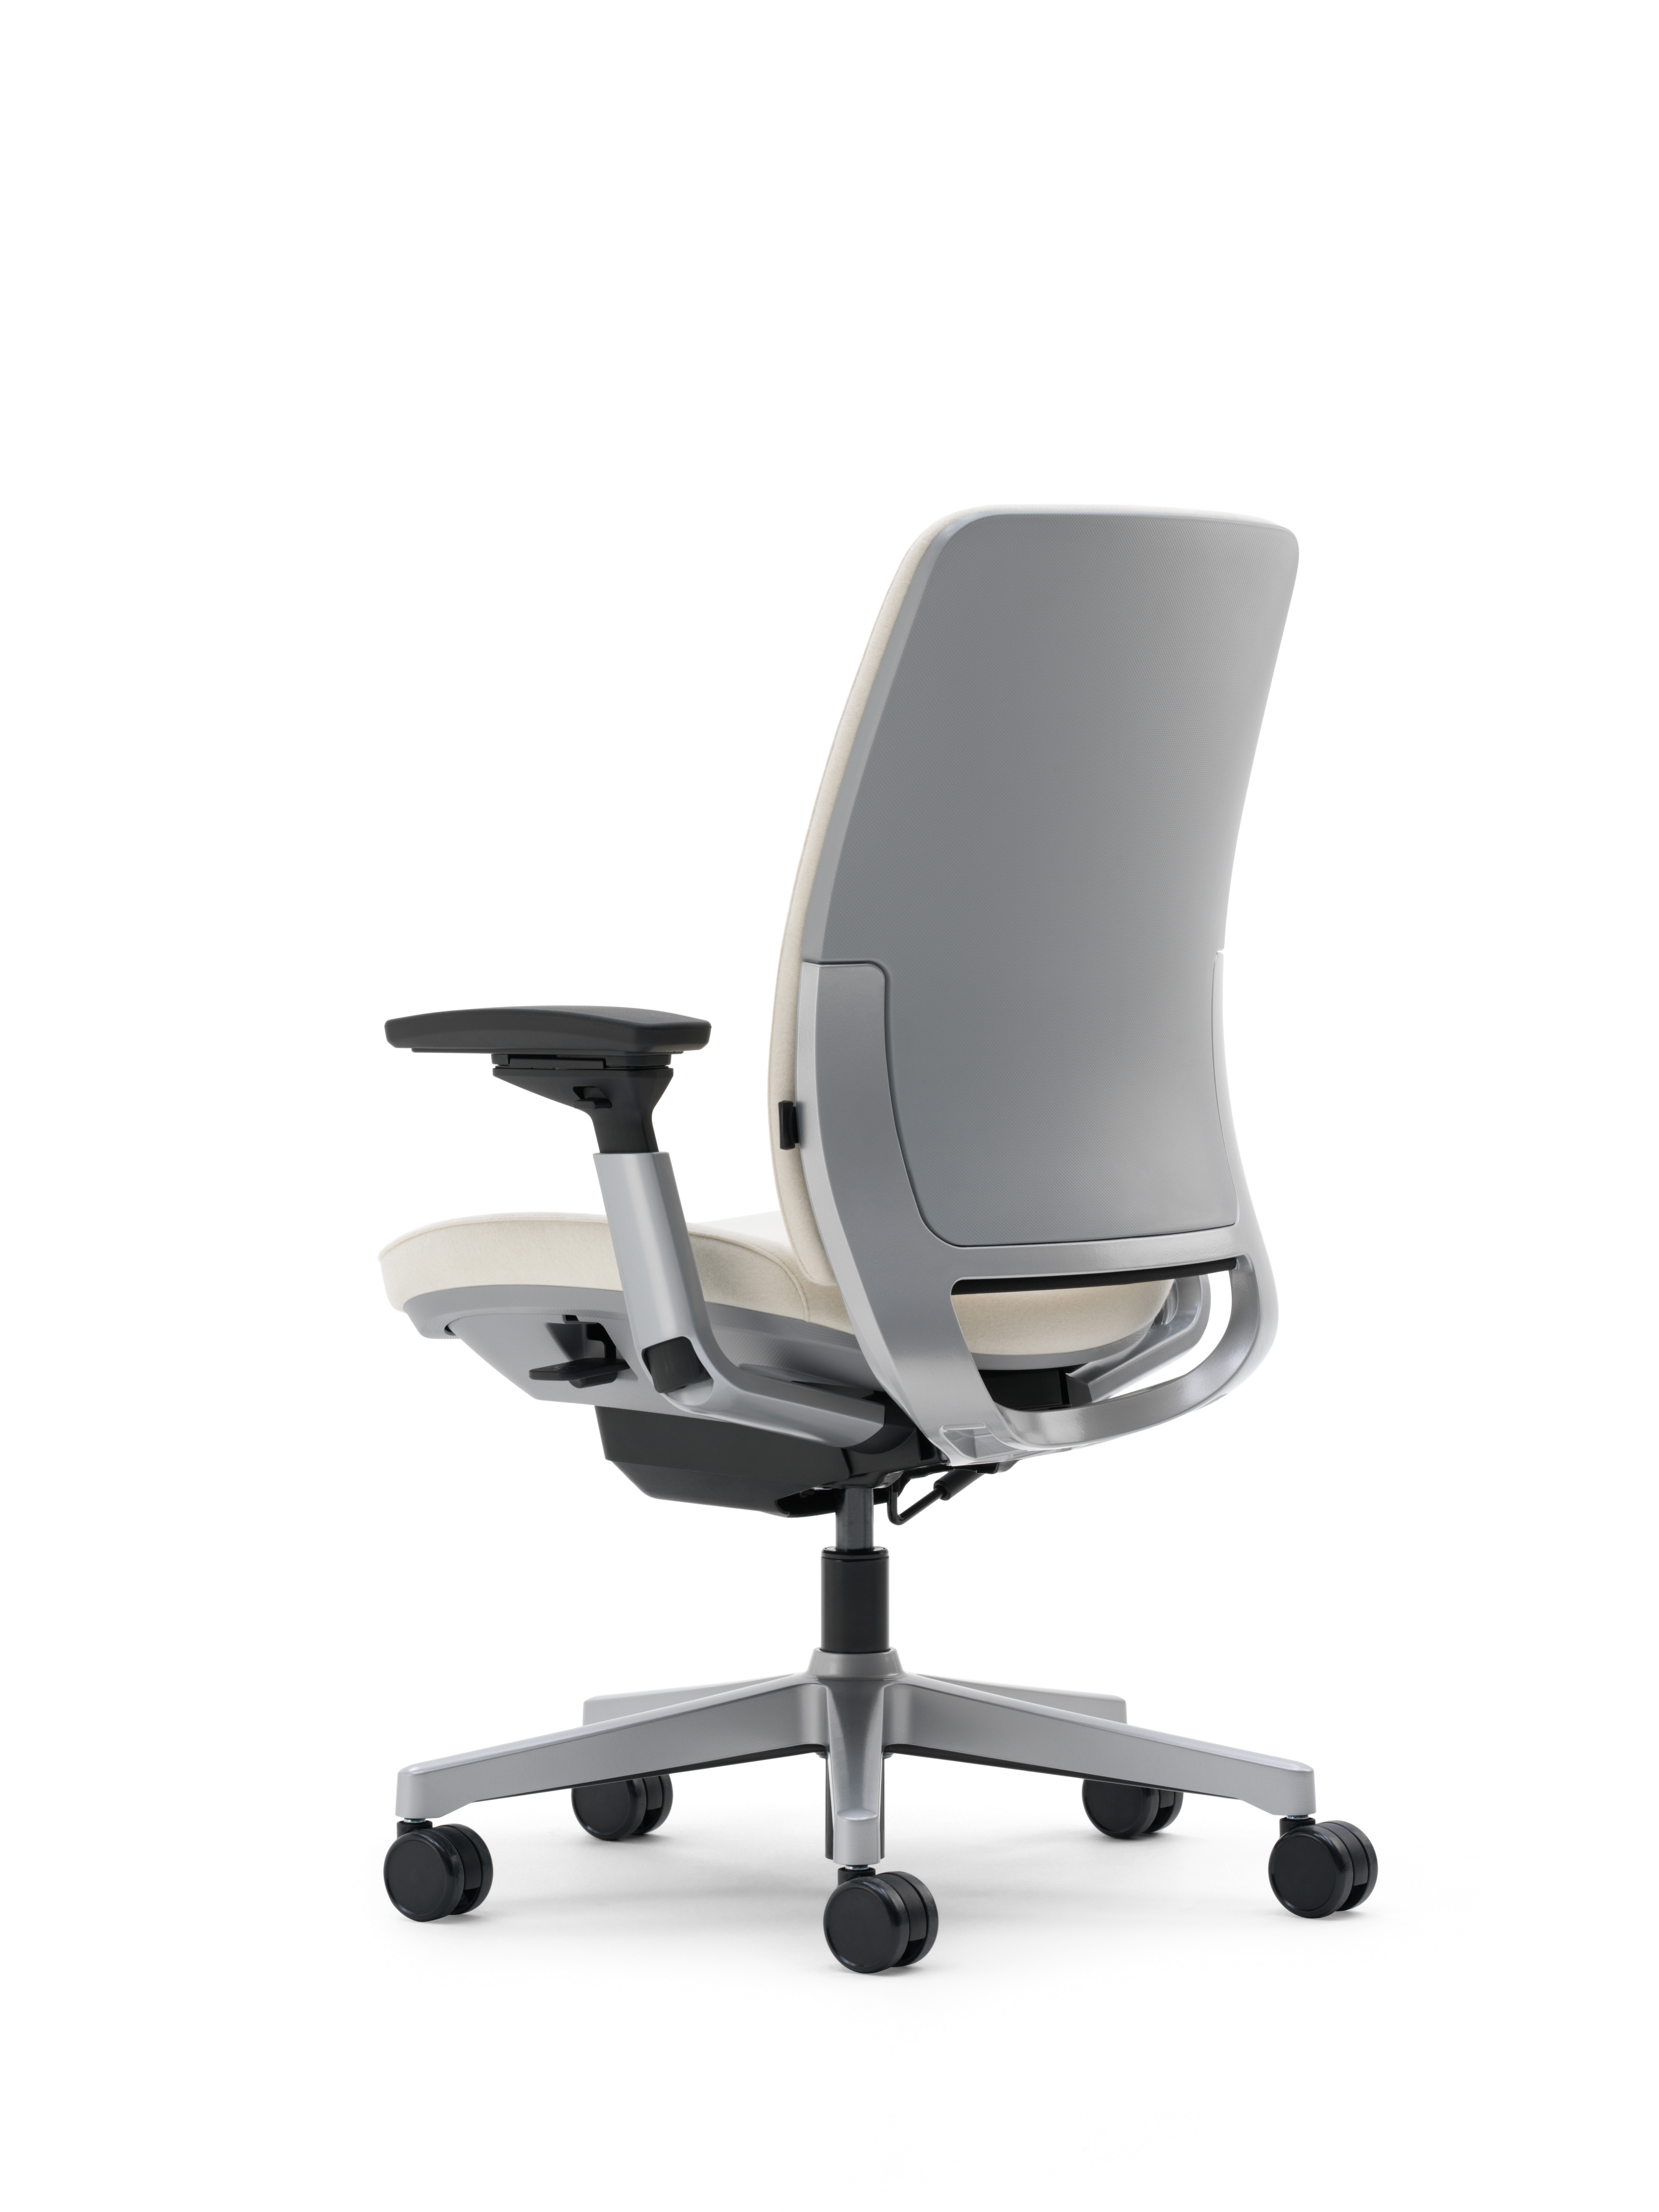 Amia chair by Steelcase